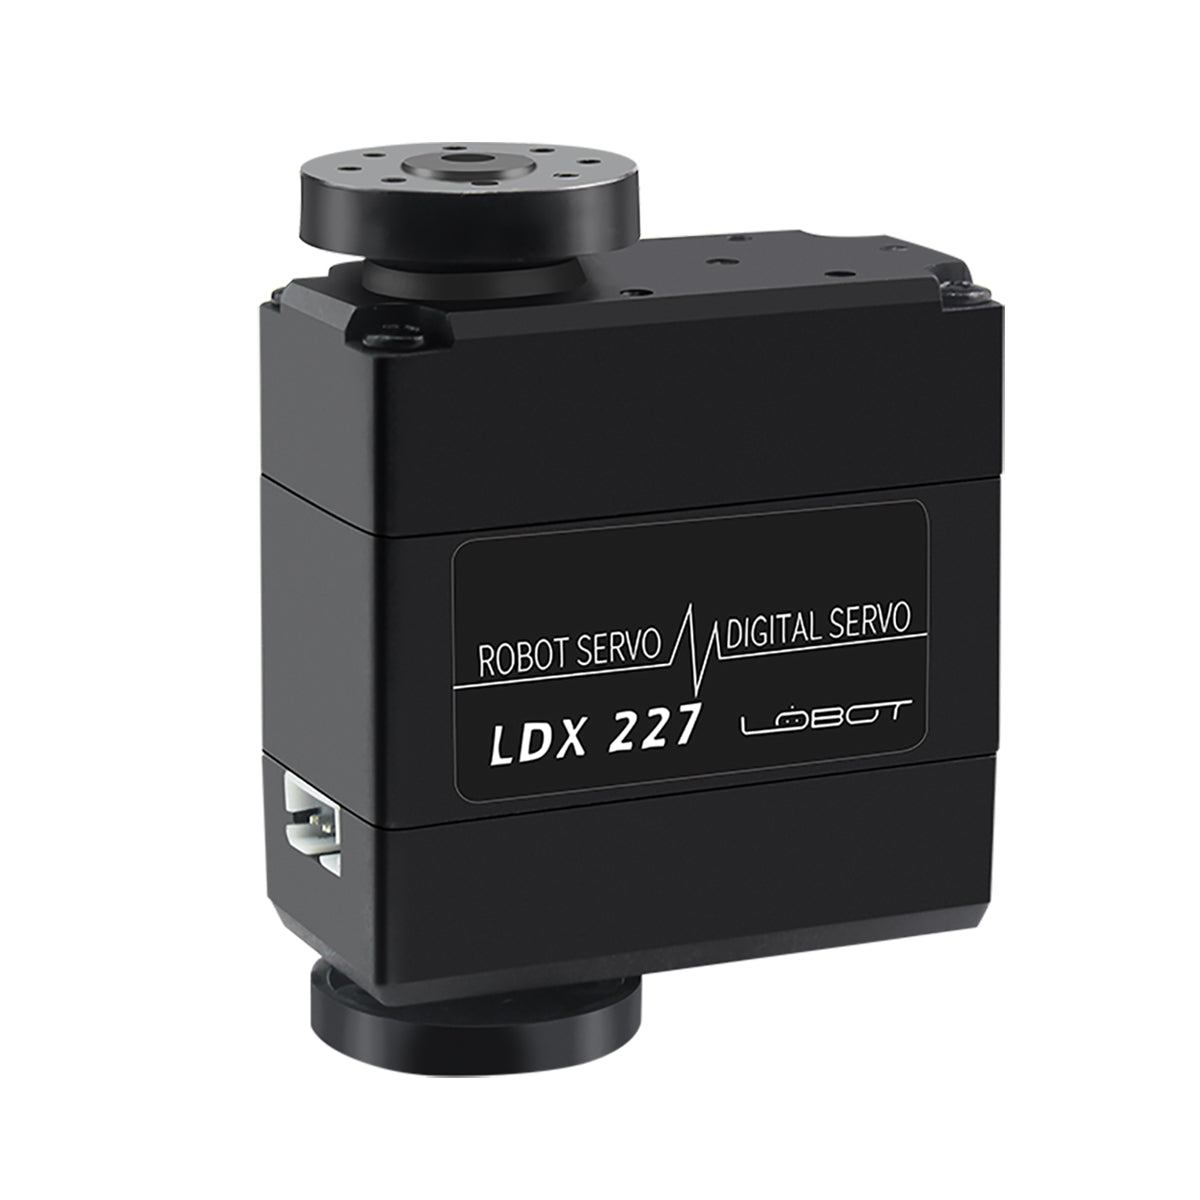 Hiwonder LDX-227 Full Metal Gear Digital Servo with Dual Ball Bearing for Robot(Control Angle 270)